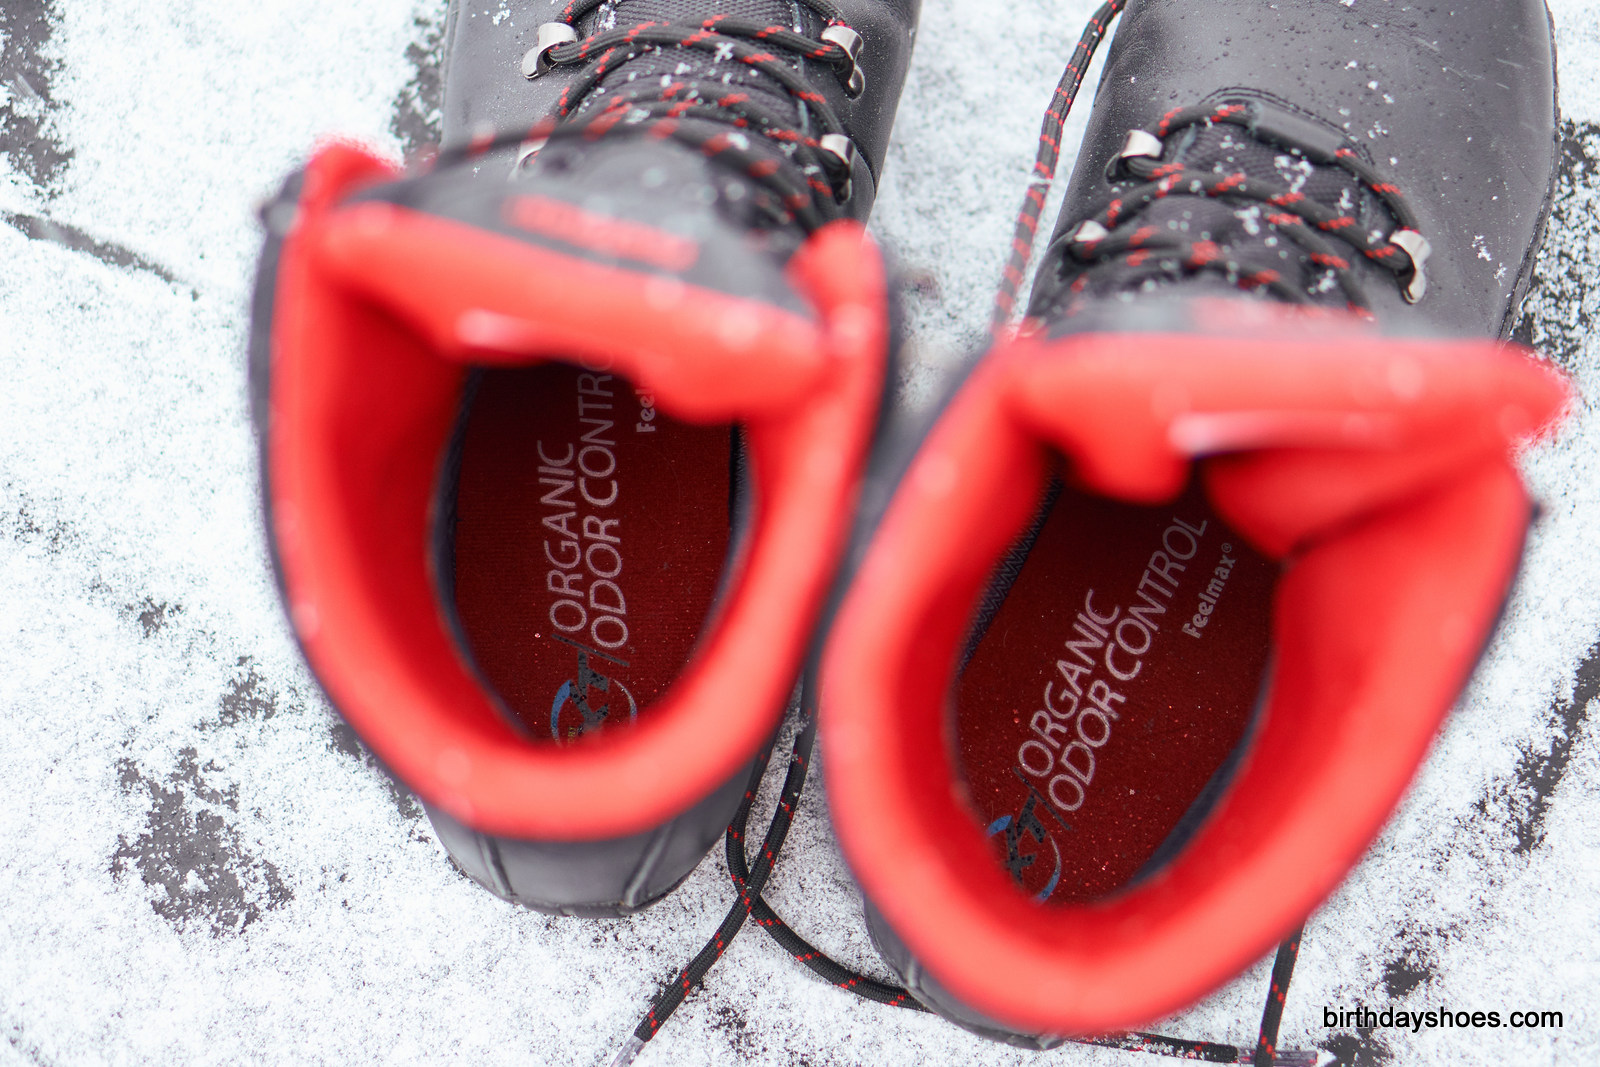 The Cleanport NXT-treated insole